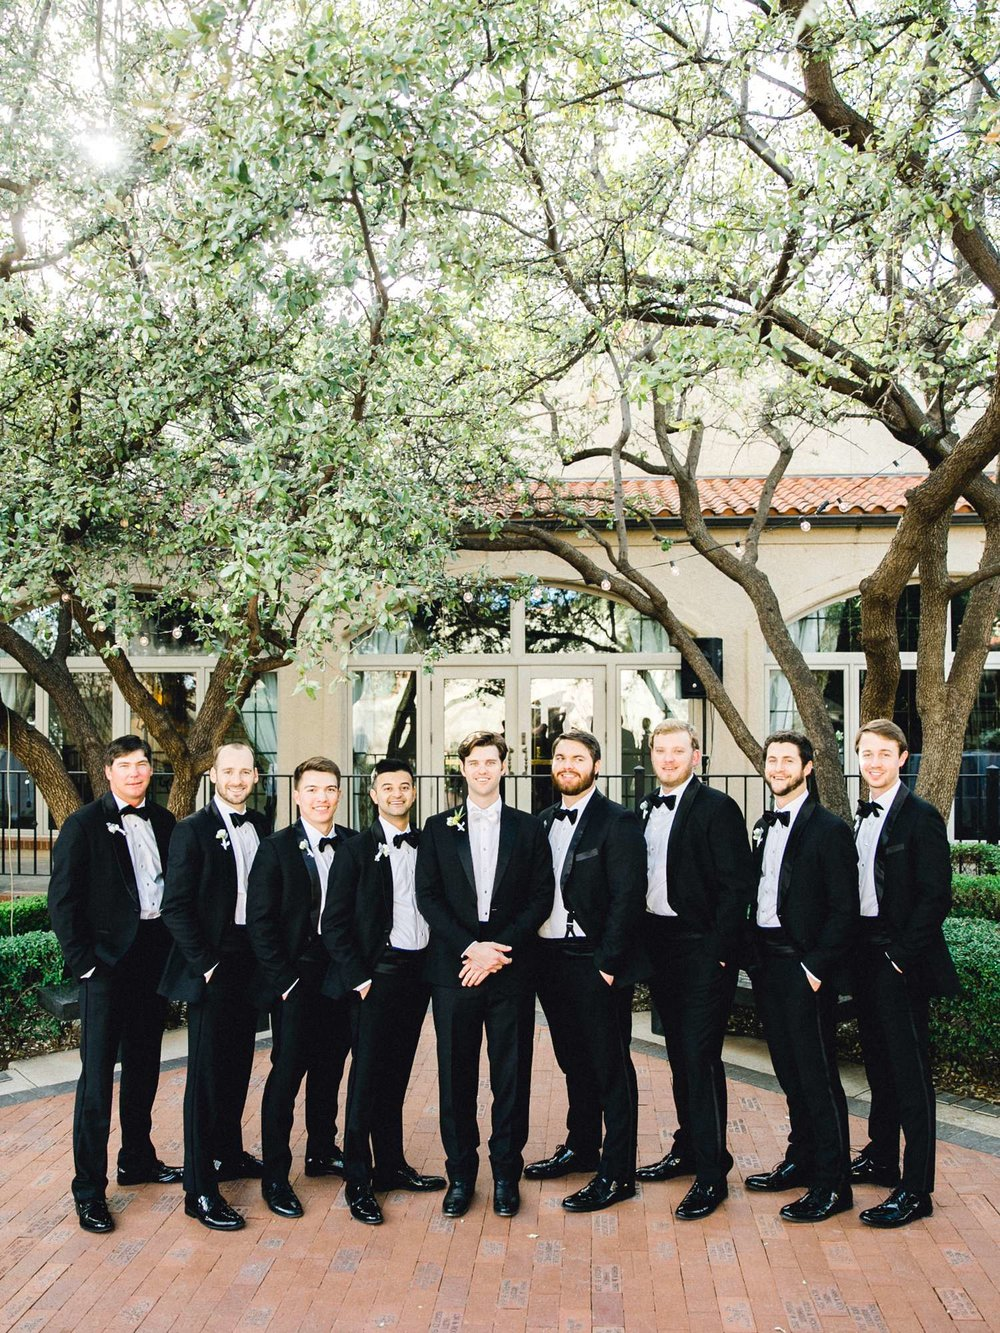 MARLEE+LLOYD+MORGAN+ALLEEJ+TEXAS+TECH+MERKET+ALUMNI+WEDDINGS+LUBBOCK+WEST+TABLE+CLASSIC+SPAIN_0079.jpg